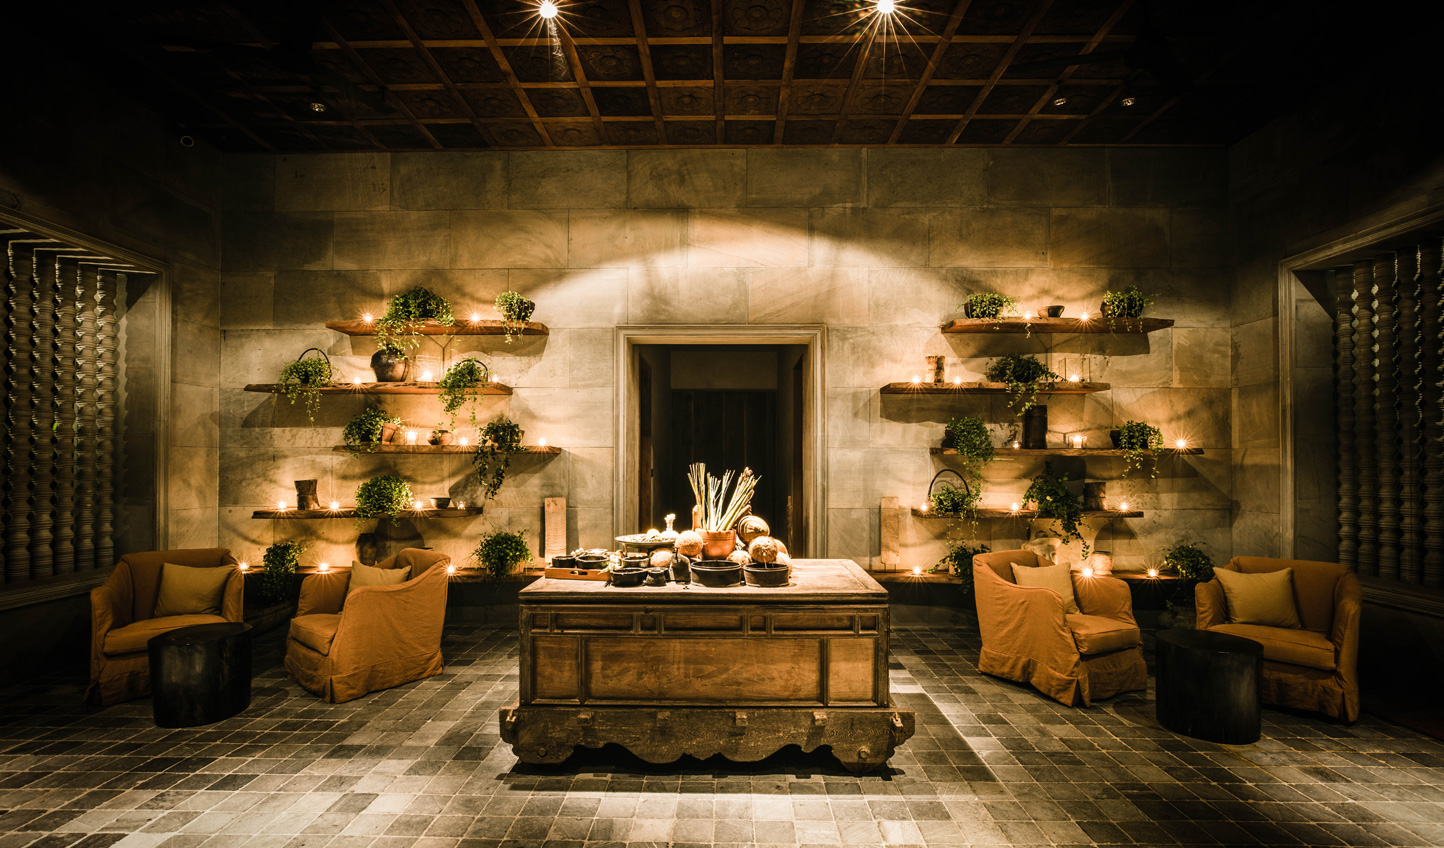 Discover ancient therapies at the Spa